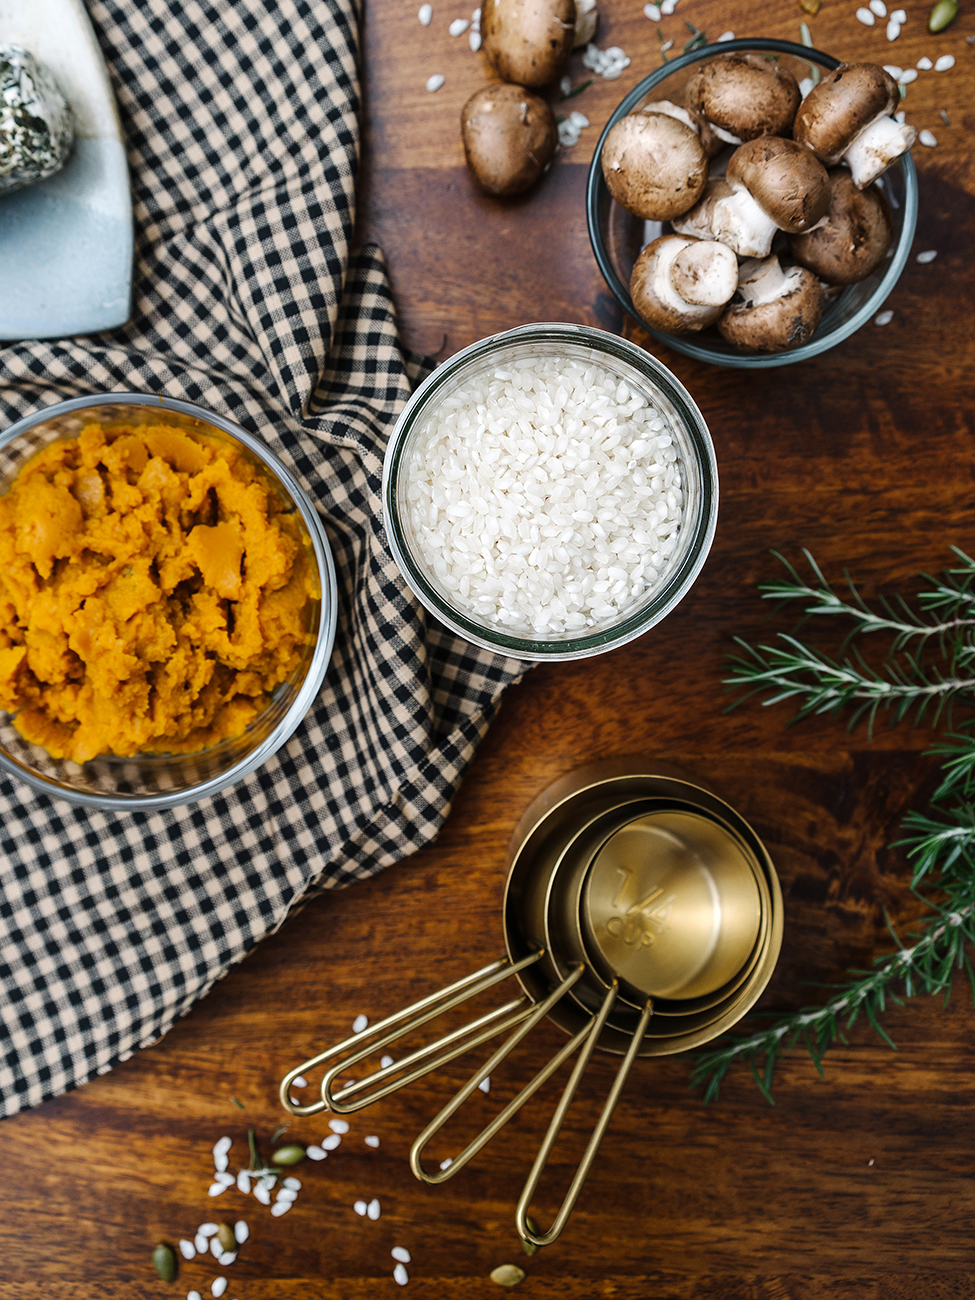 Ingredients to make the pumpkin risotto